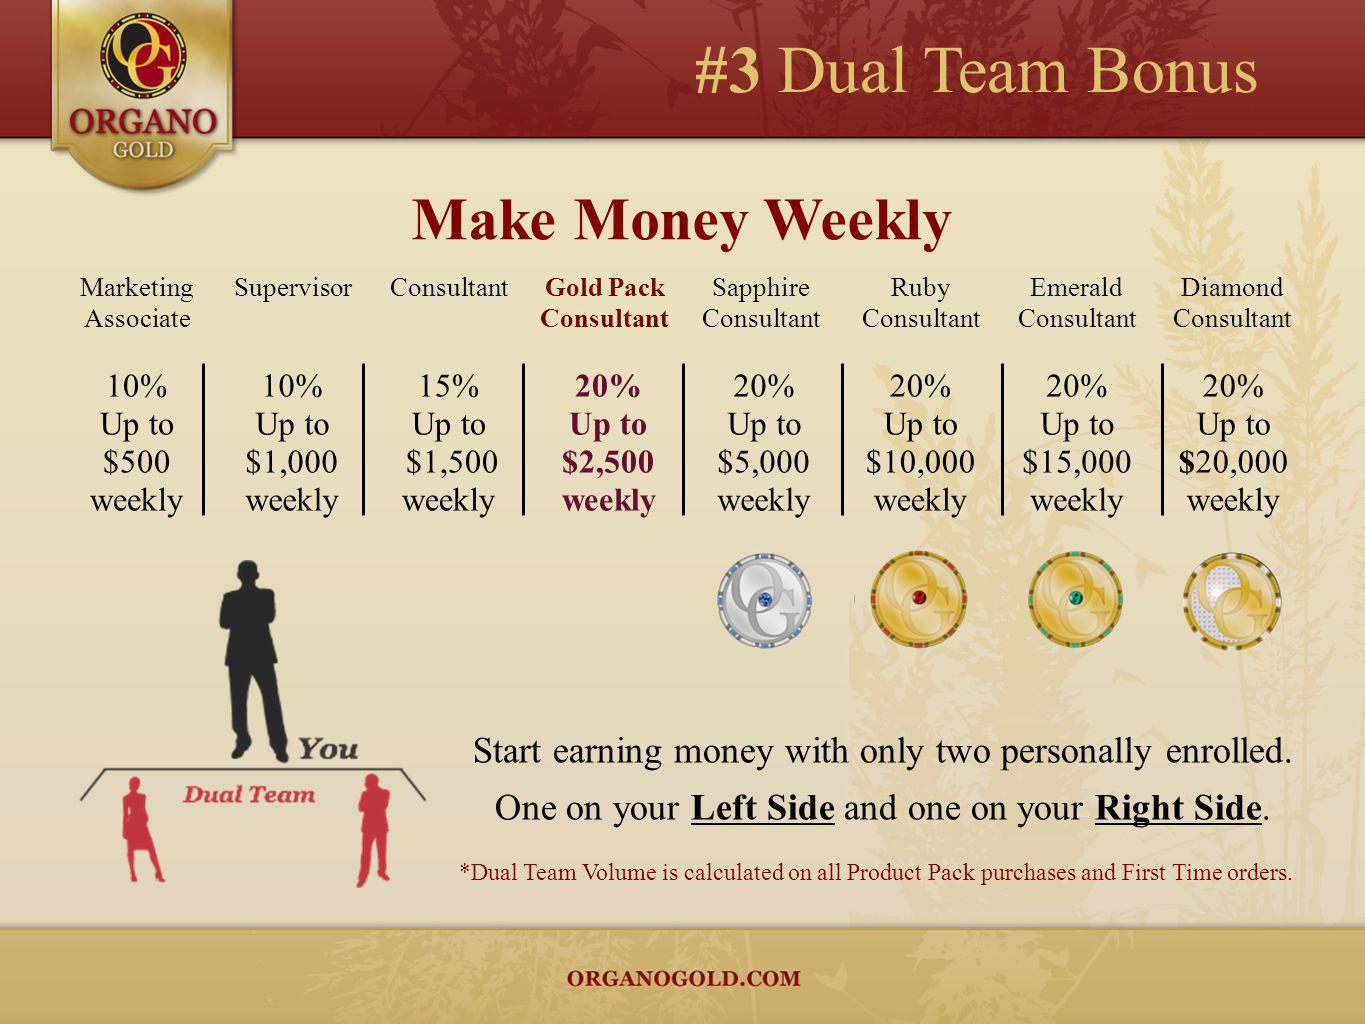 #3 Dual Team Bonus Make Money Weekly